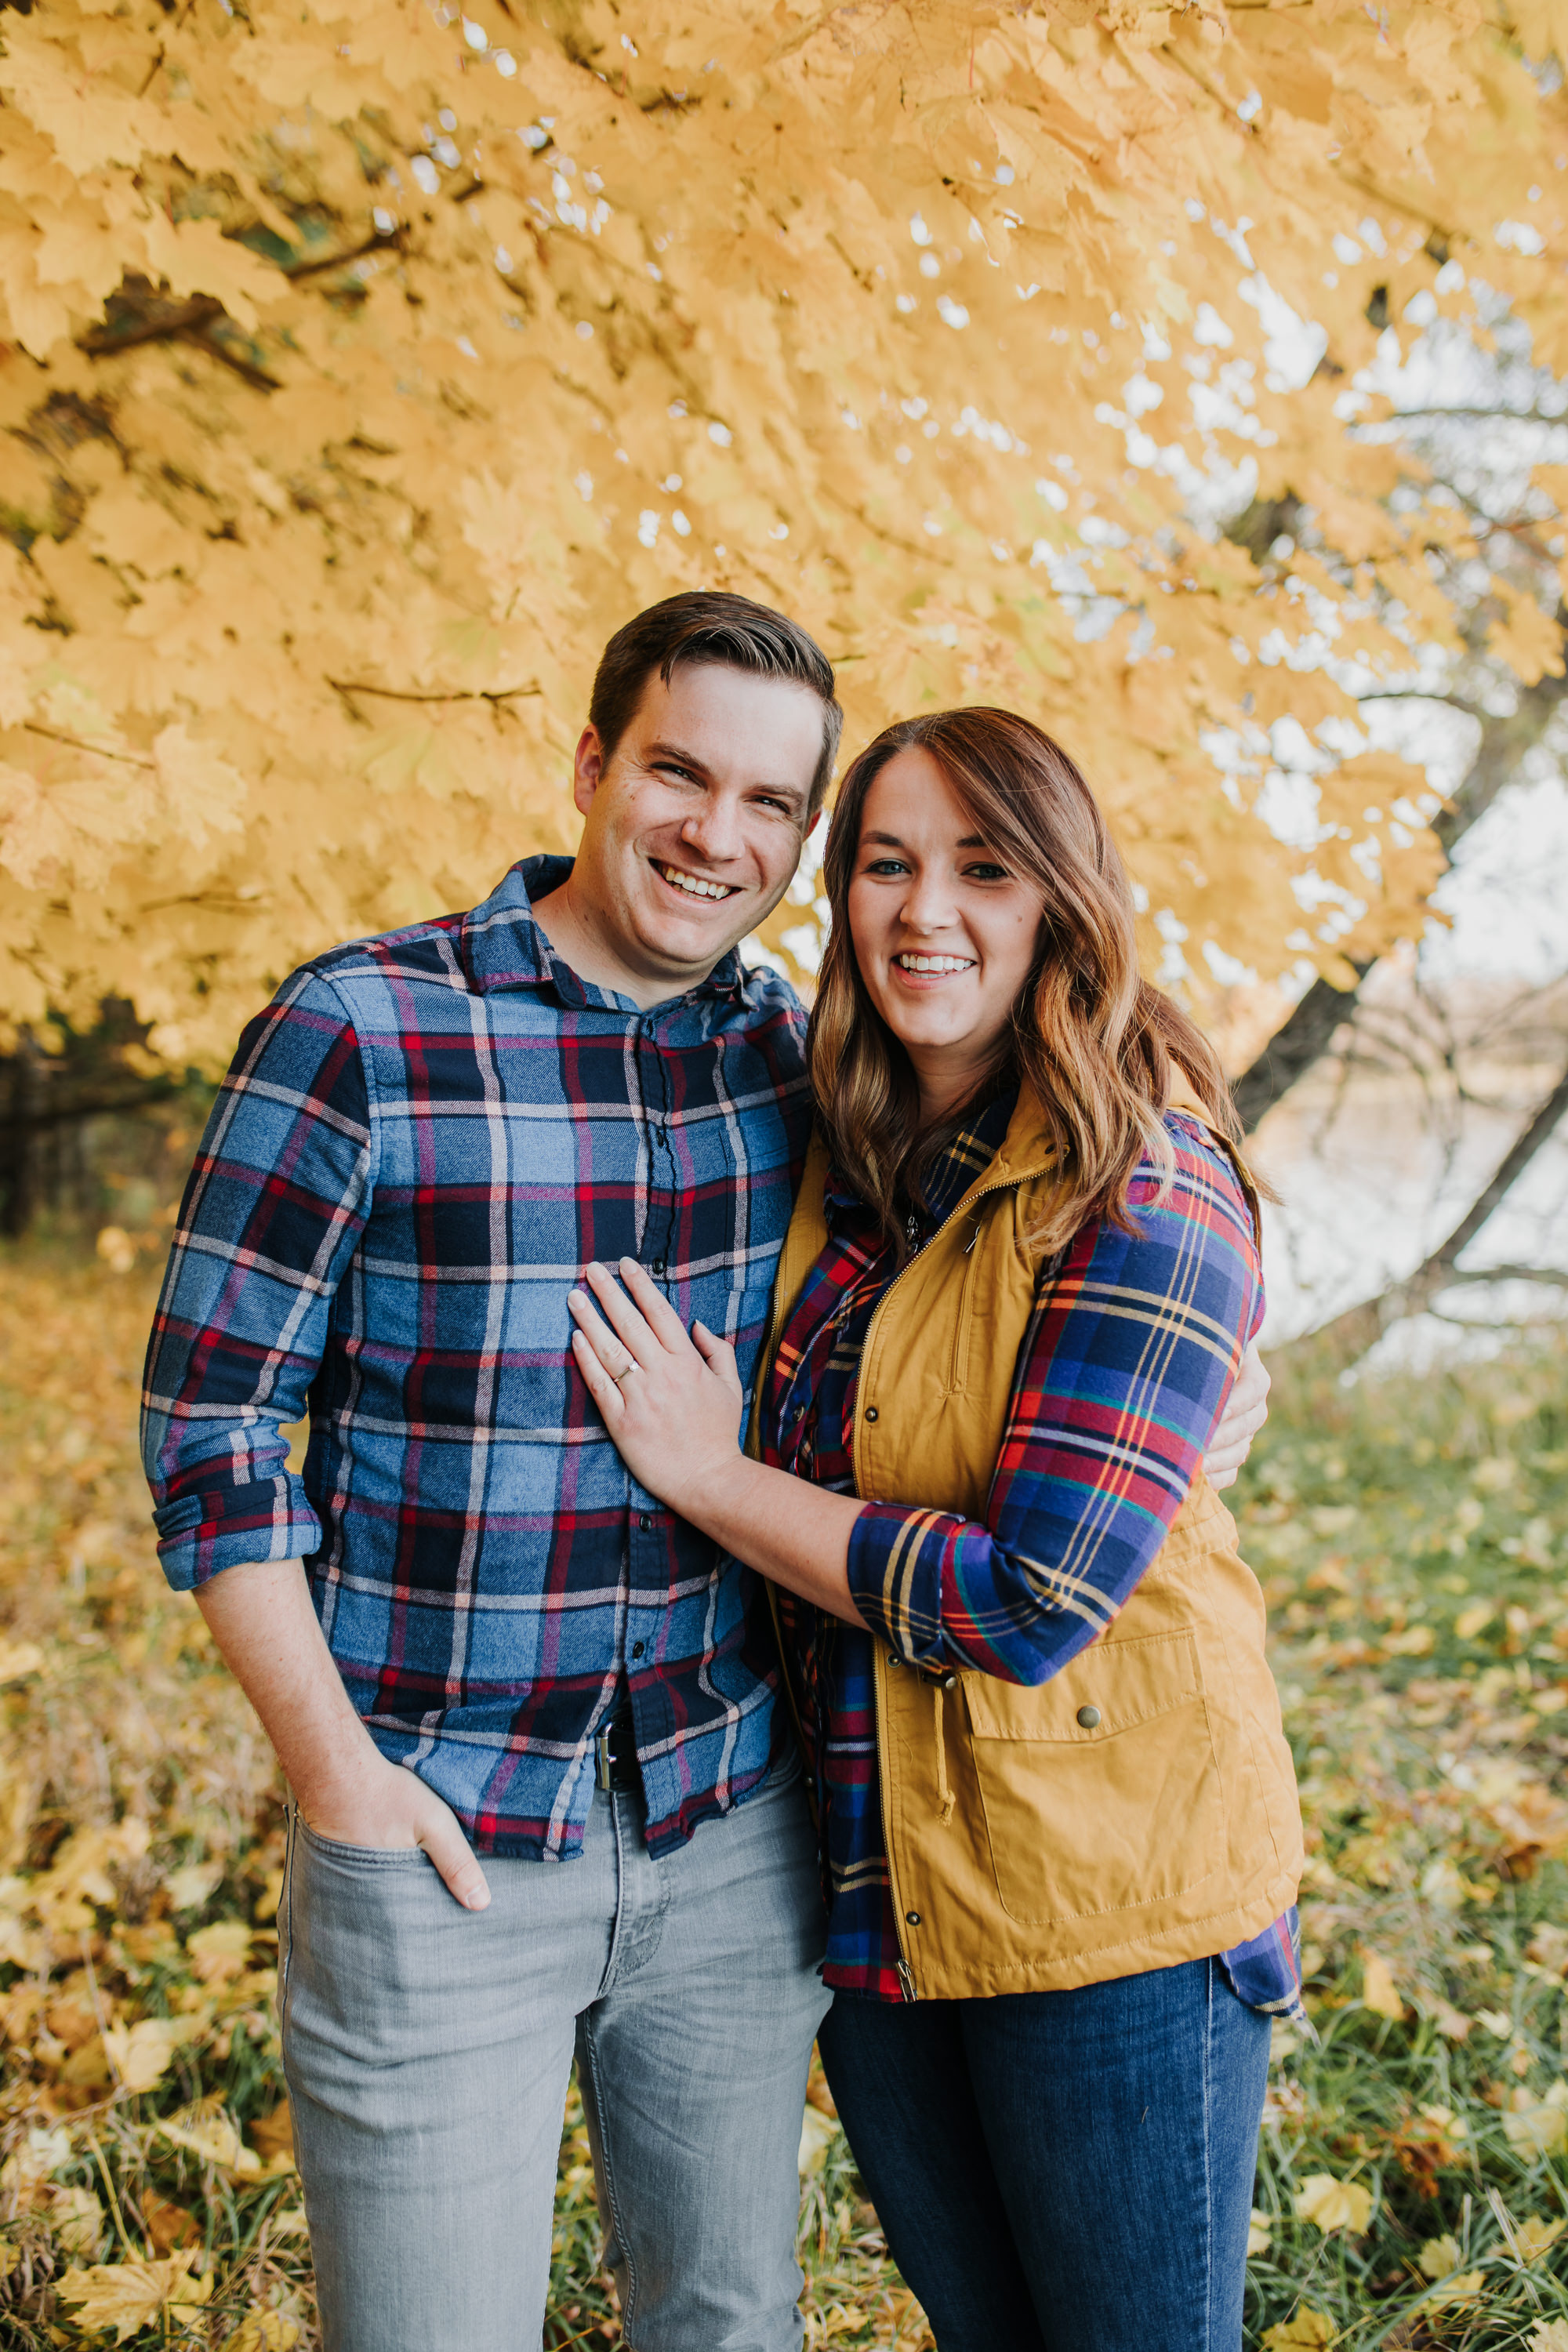 Katie & Adam - Engaged - Nathaniel Jensen Photography - Omaha Nebraska Wedding Photograper - Omaha Nebraska Engagement Session - Chalco Hills Engagement Session-2.jpg